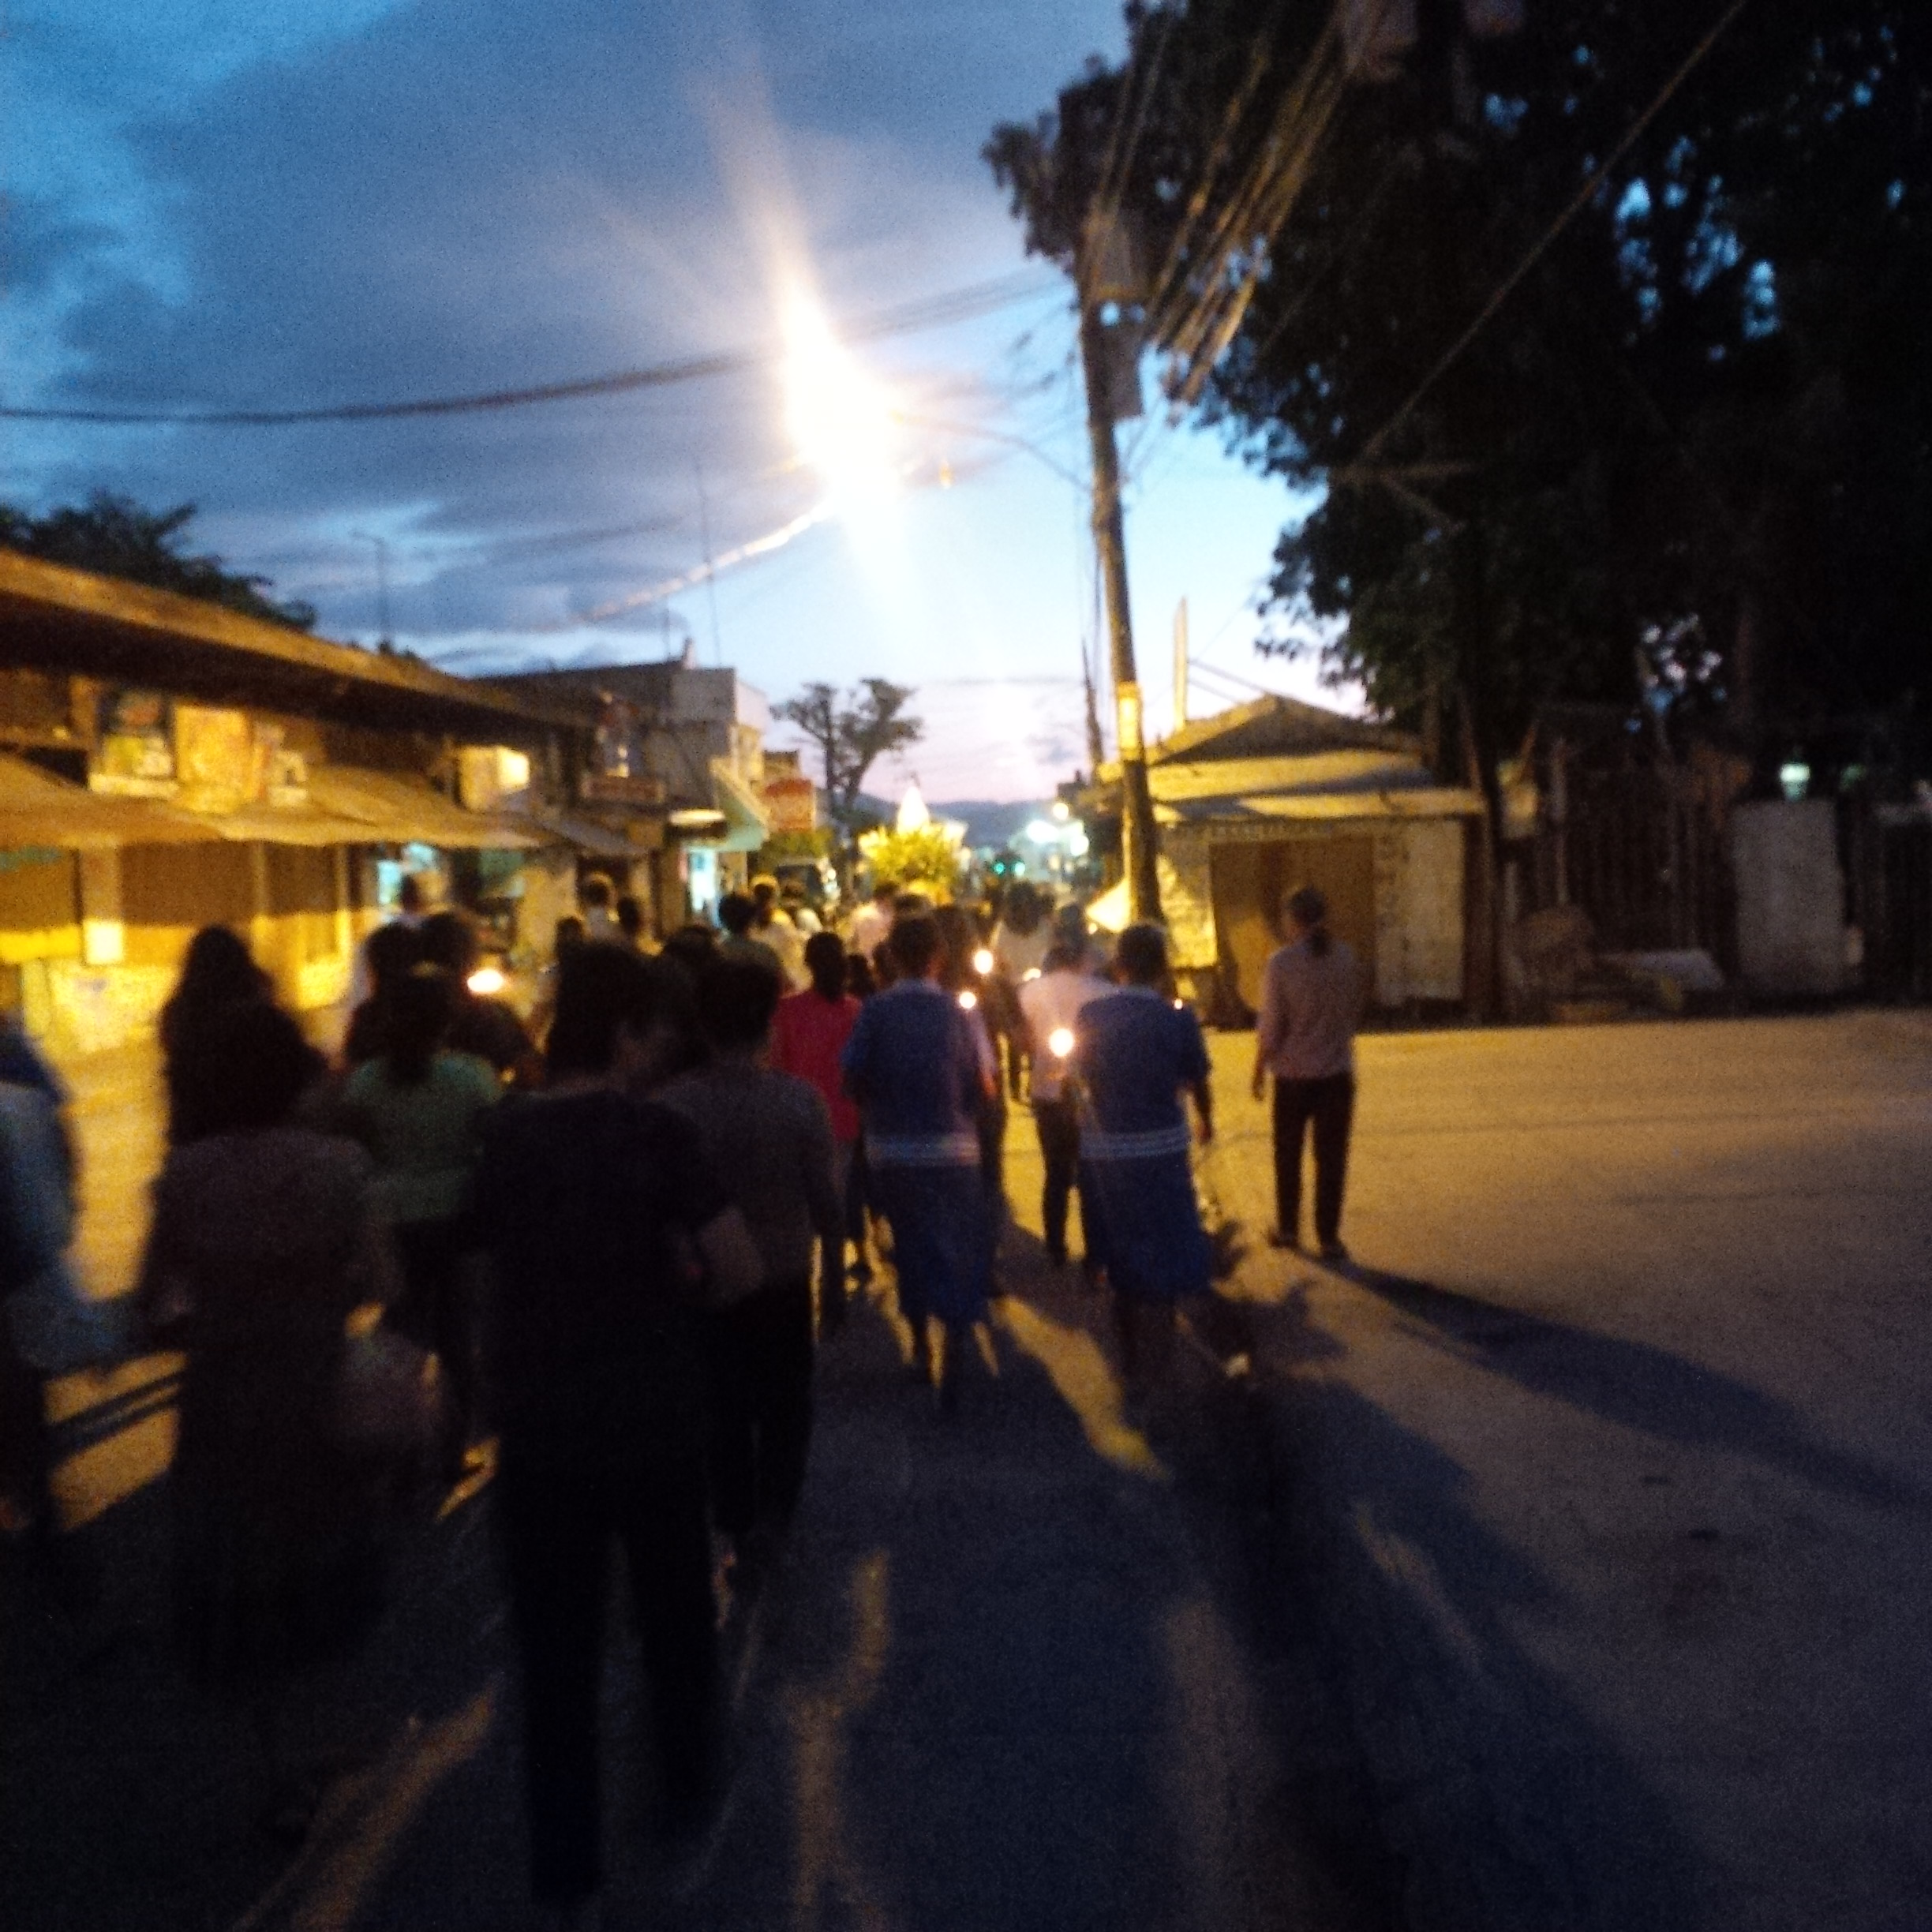 5AM, walking the streets while praying the Rosary.